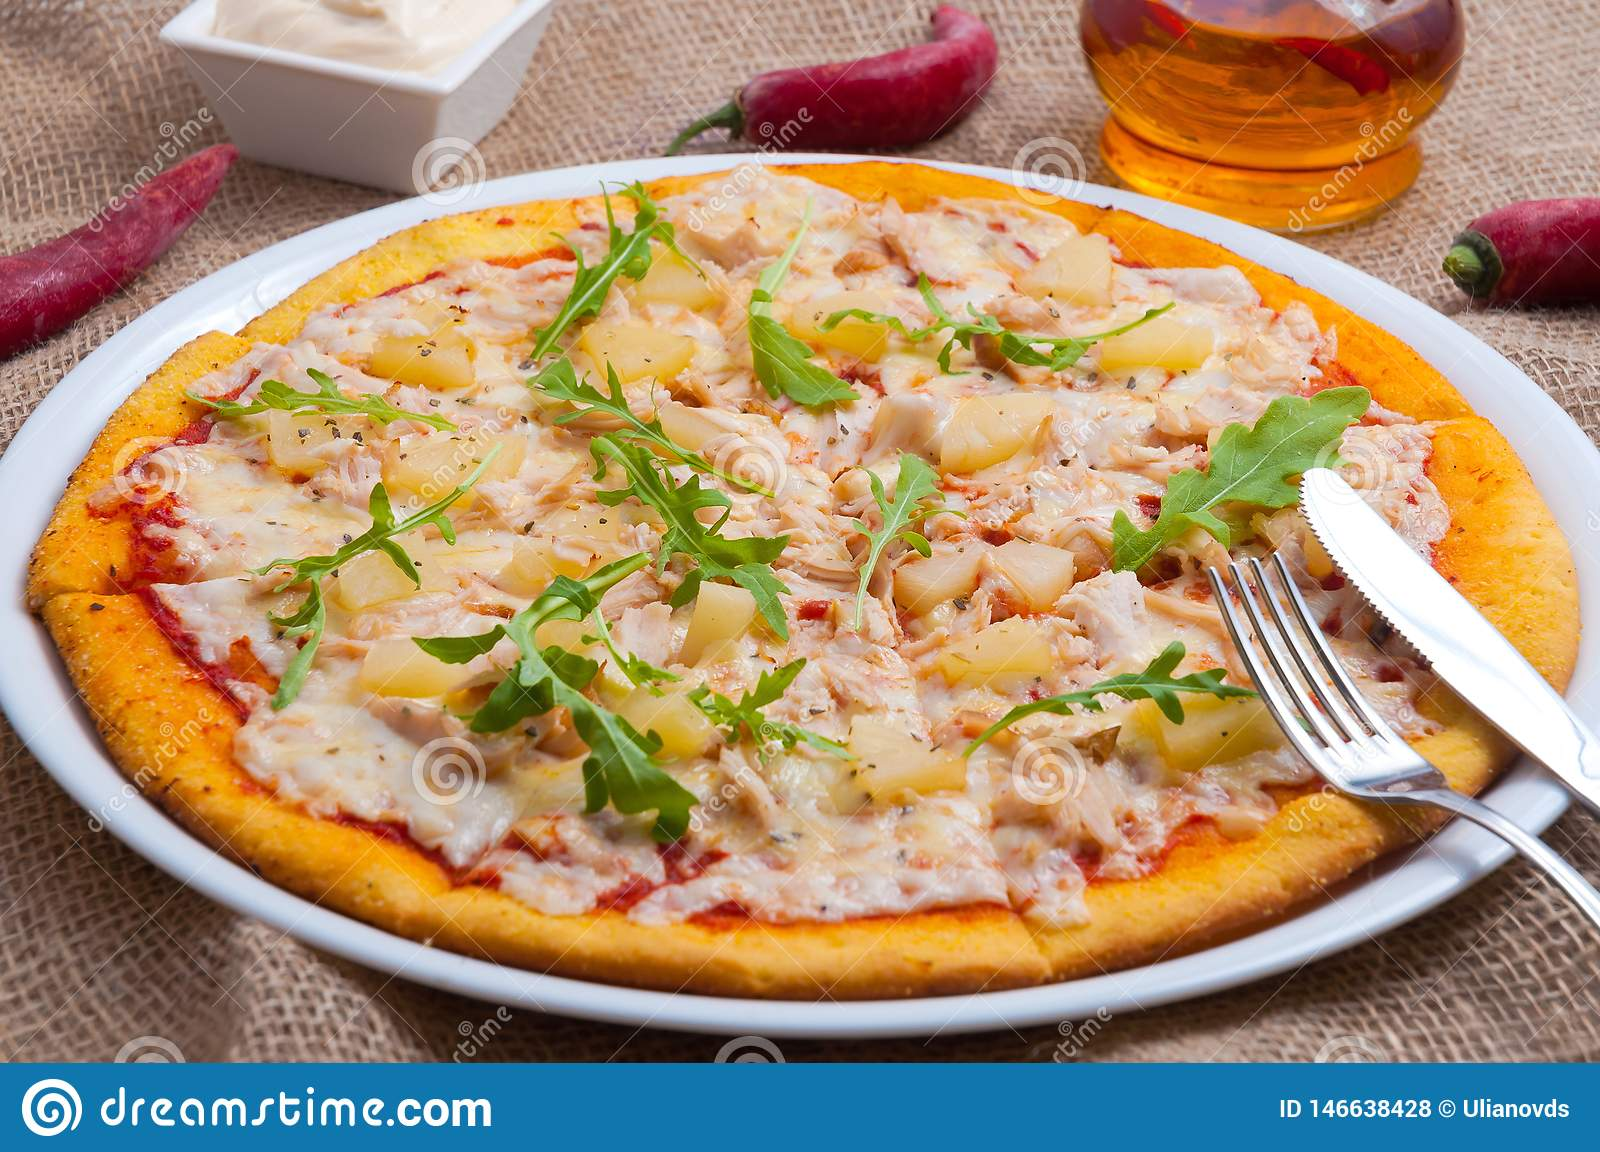 Hot Hawaiian pizza with pineapple and chicken